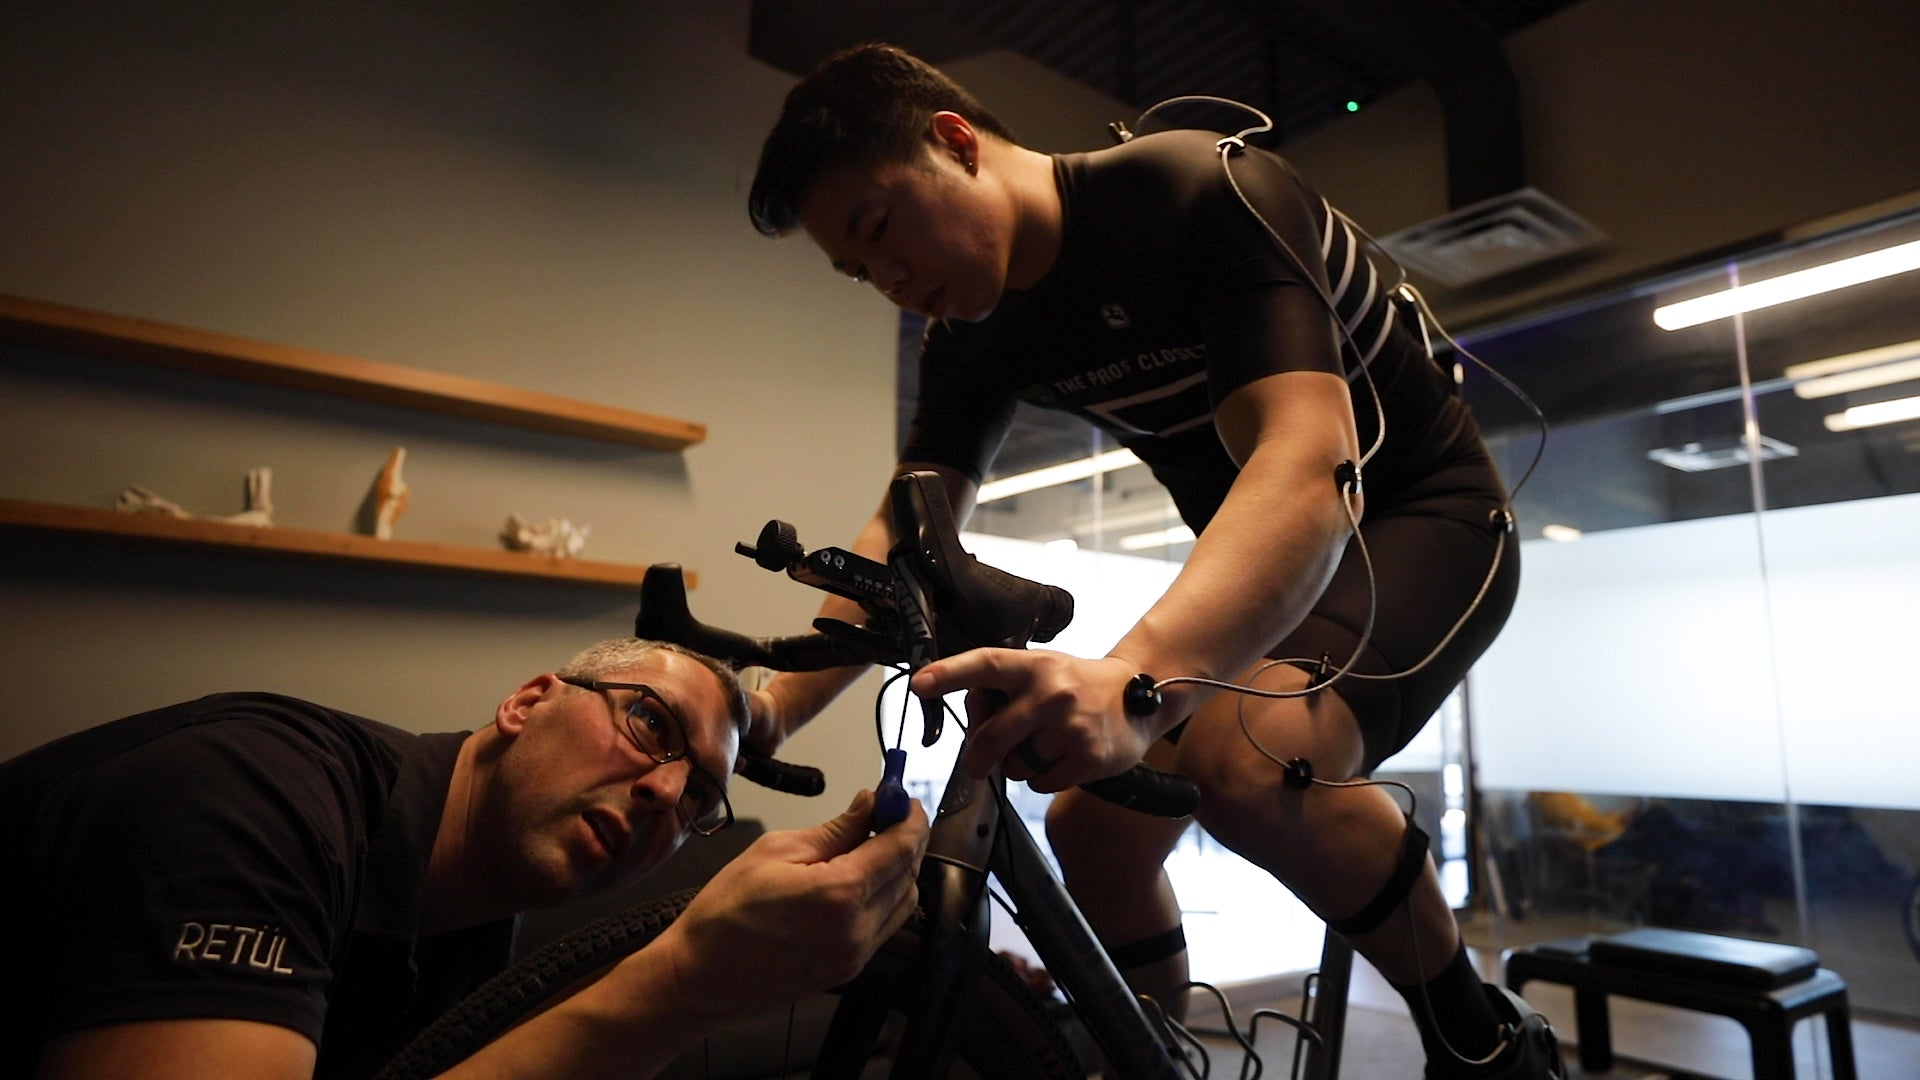 Retul bike fit stem